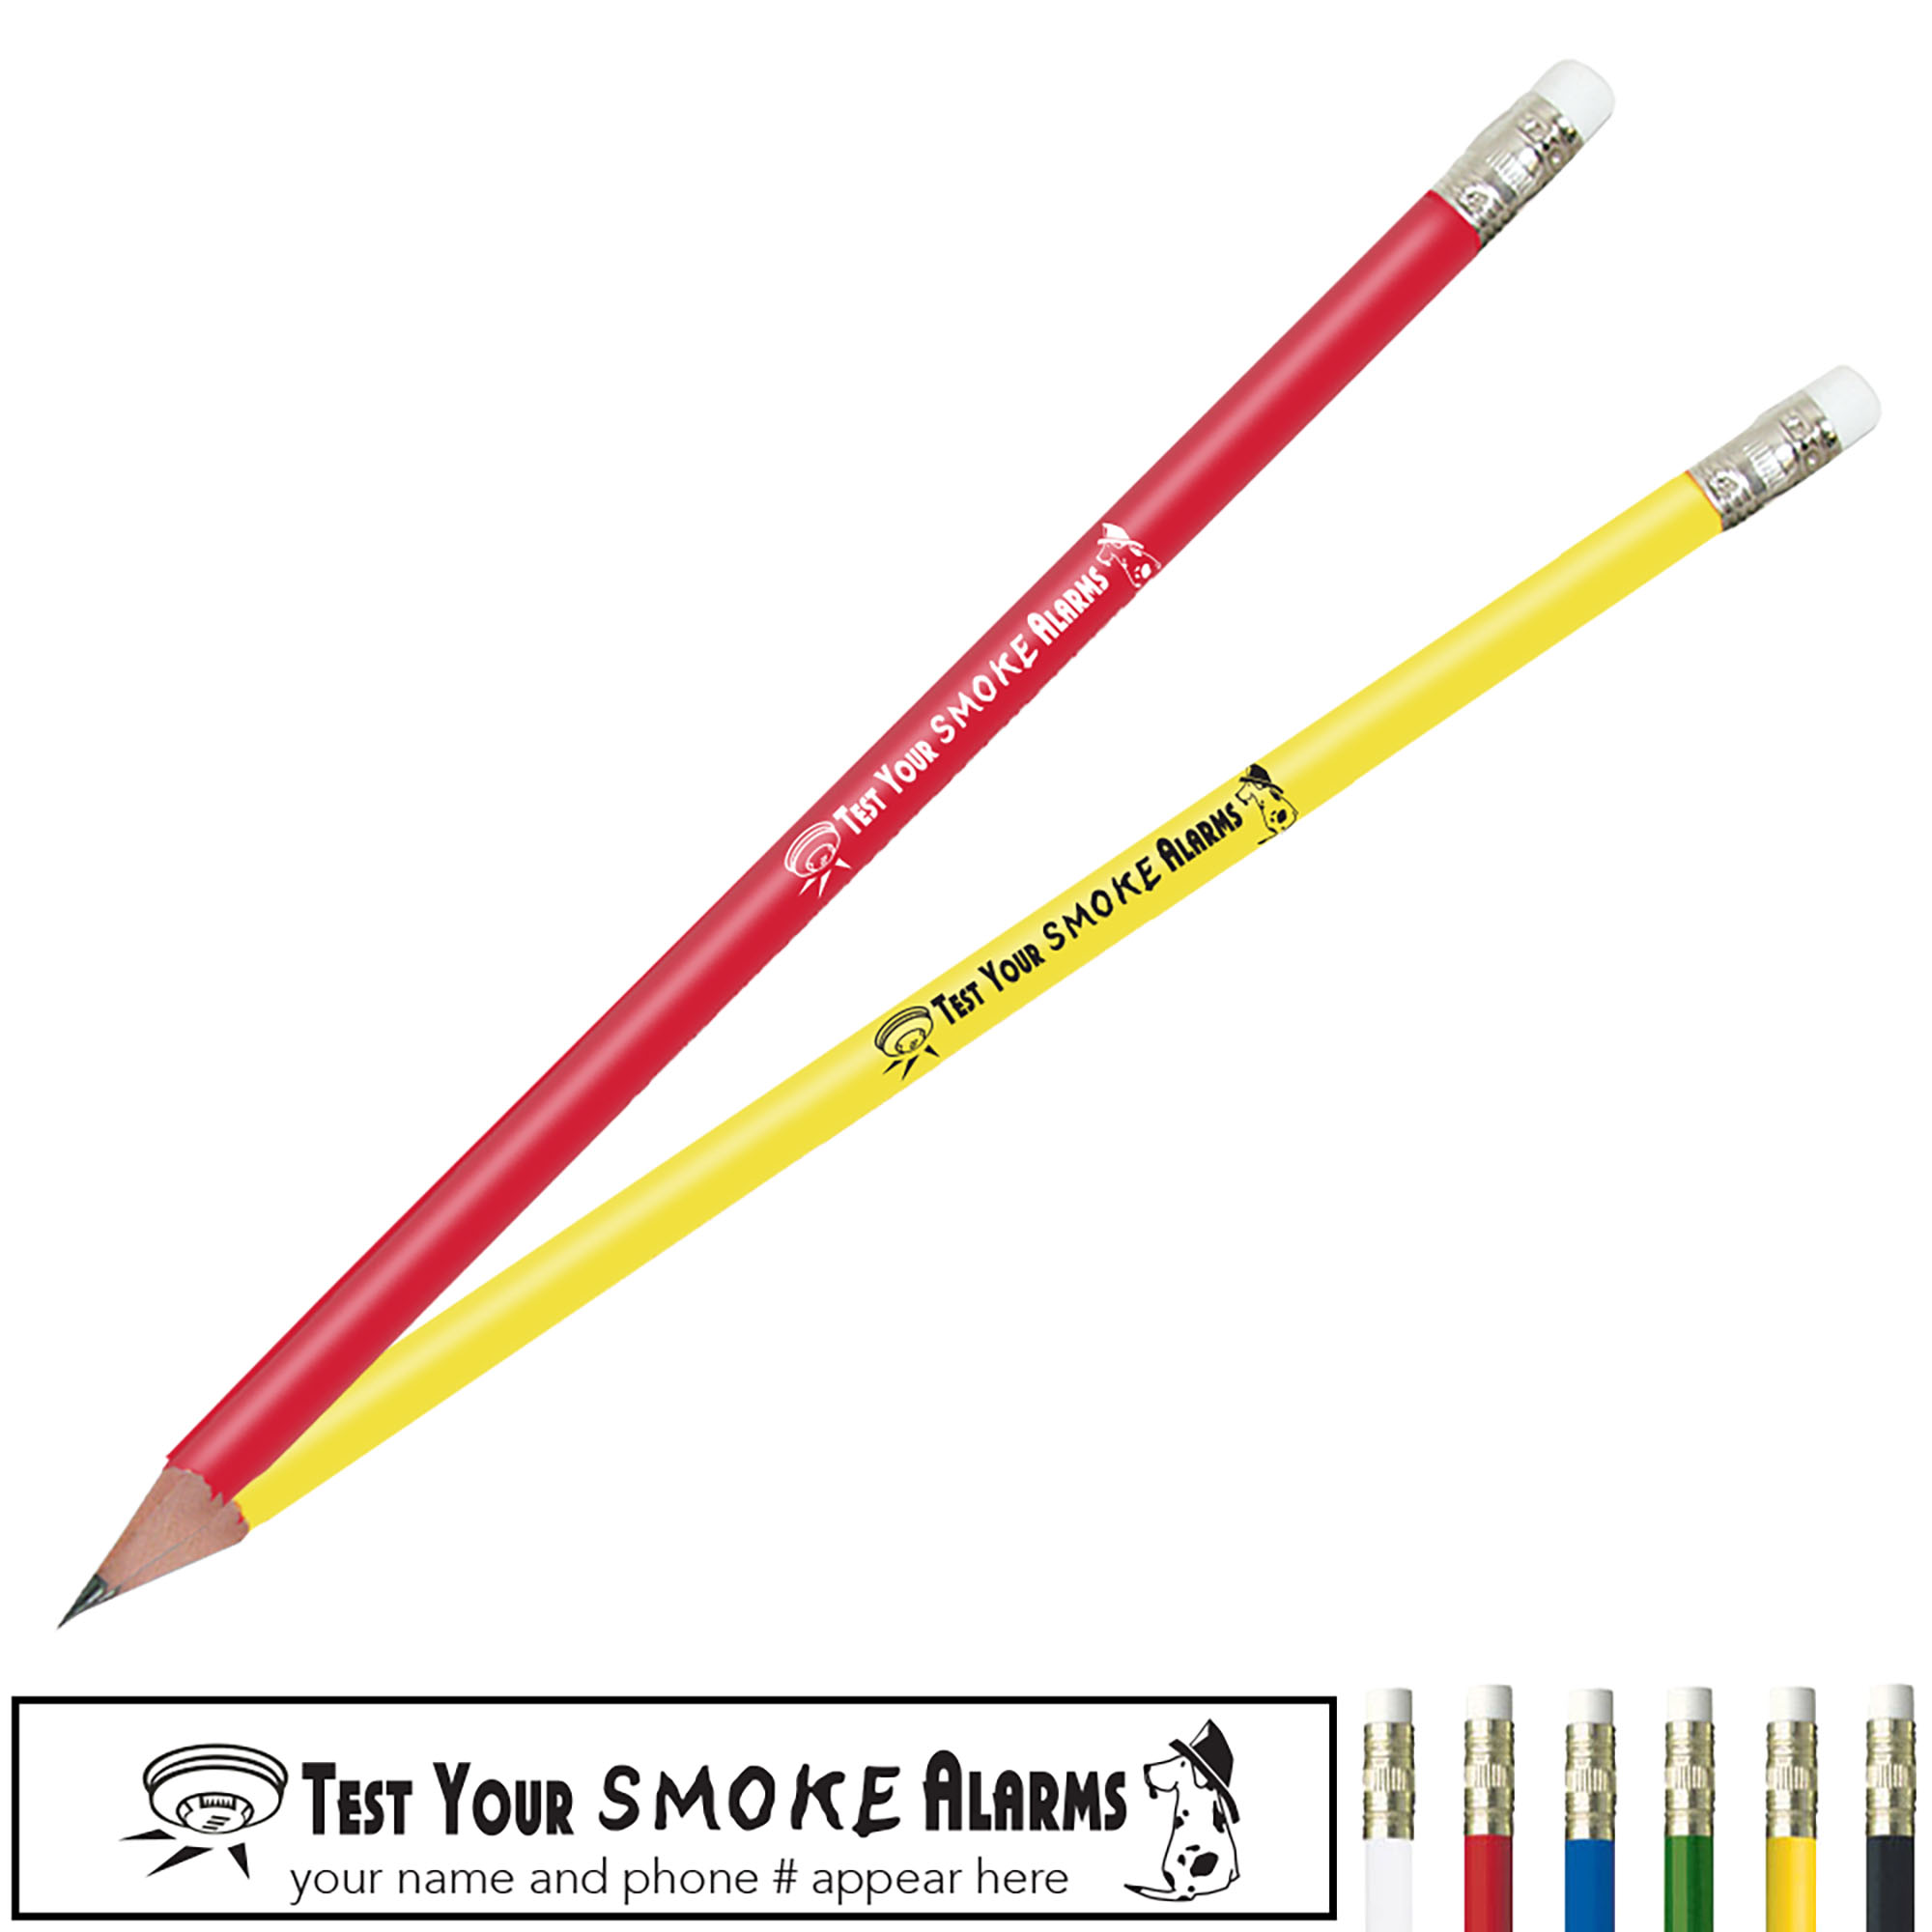 Test Your Smoke Alarms Pricebuster Pencil